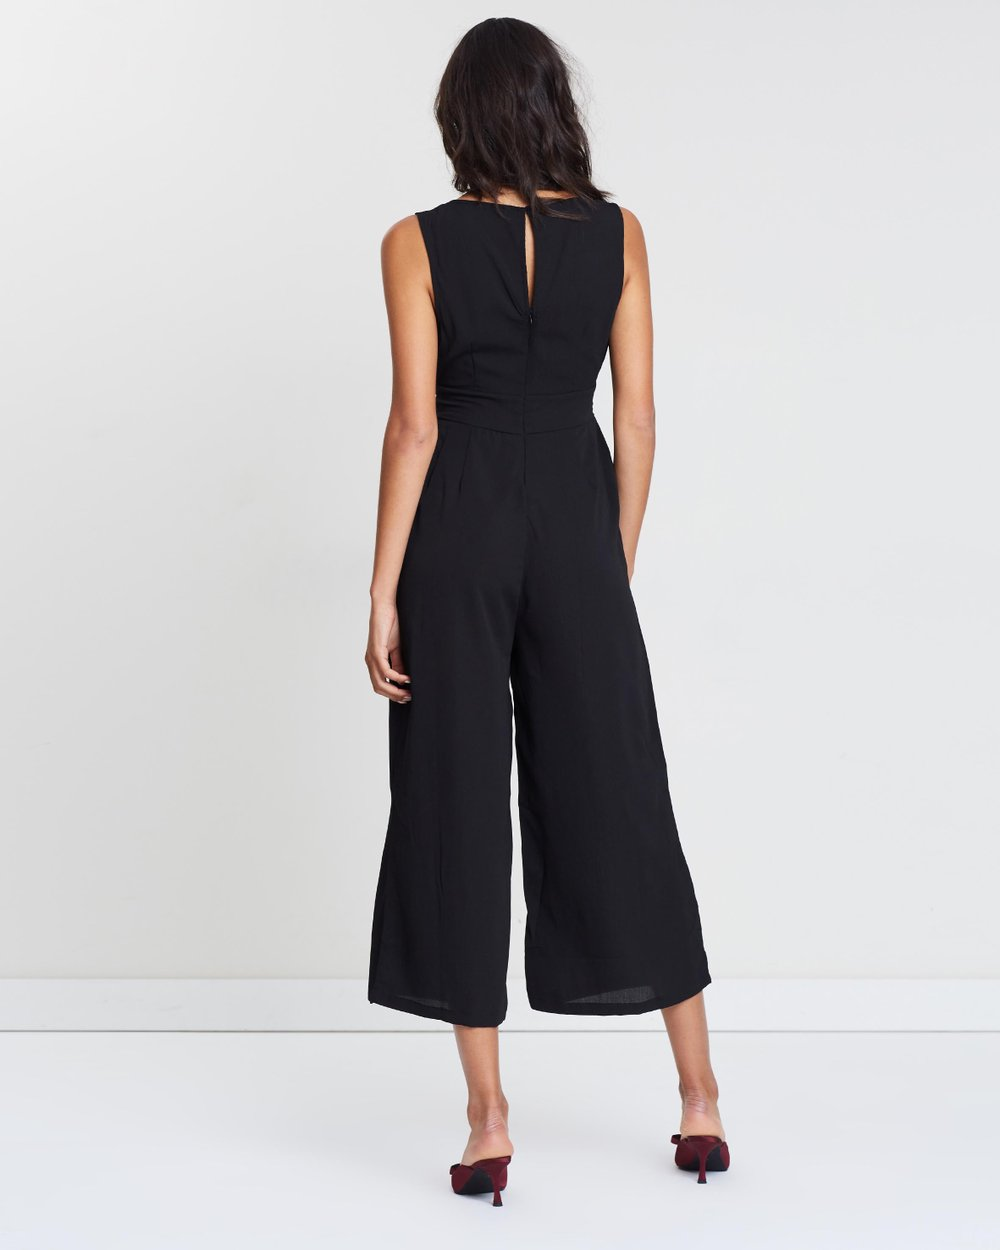 c99e93be54ac Woven Tara Sleeveless Jumpsuit by Cotton On Online